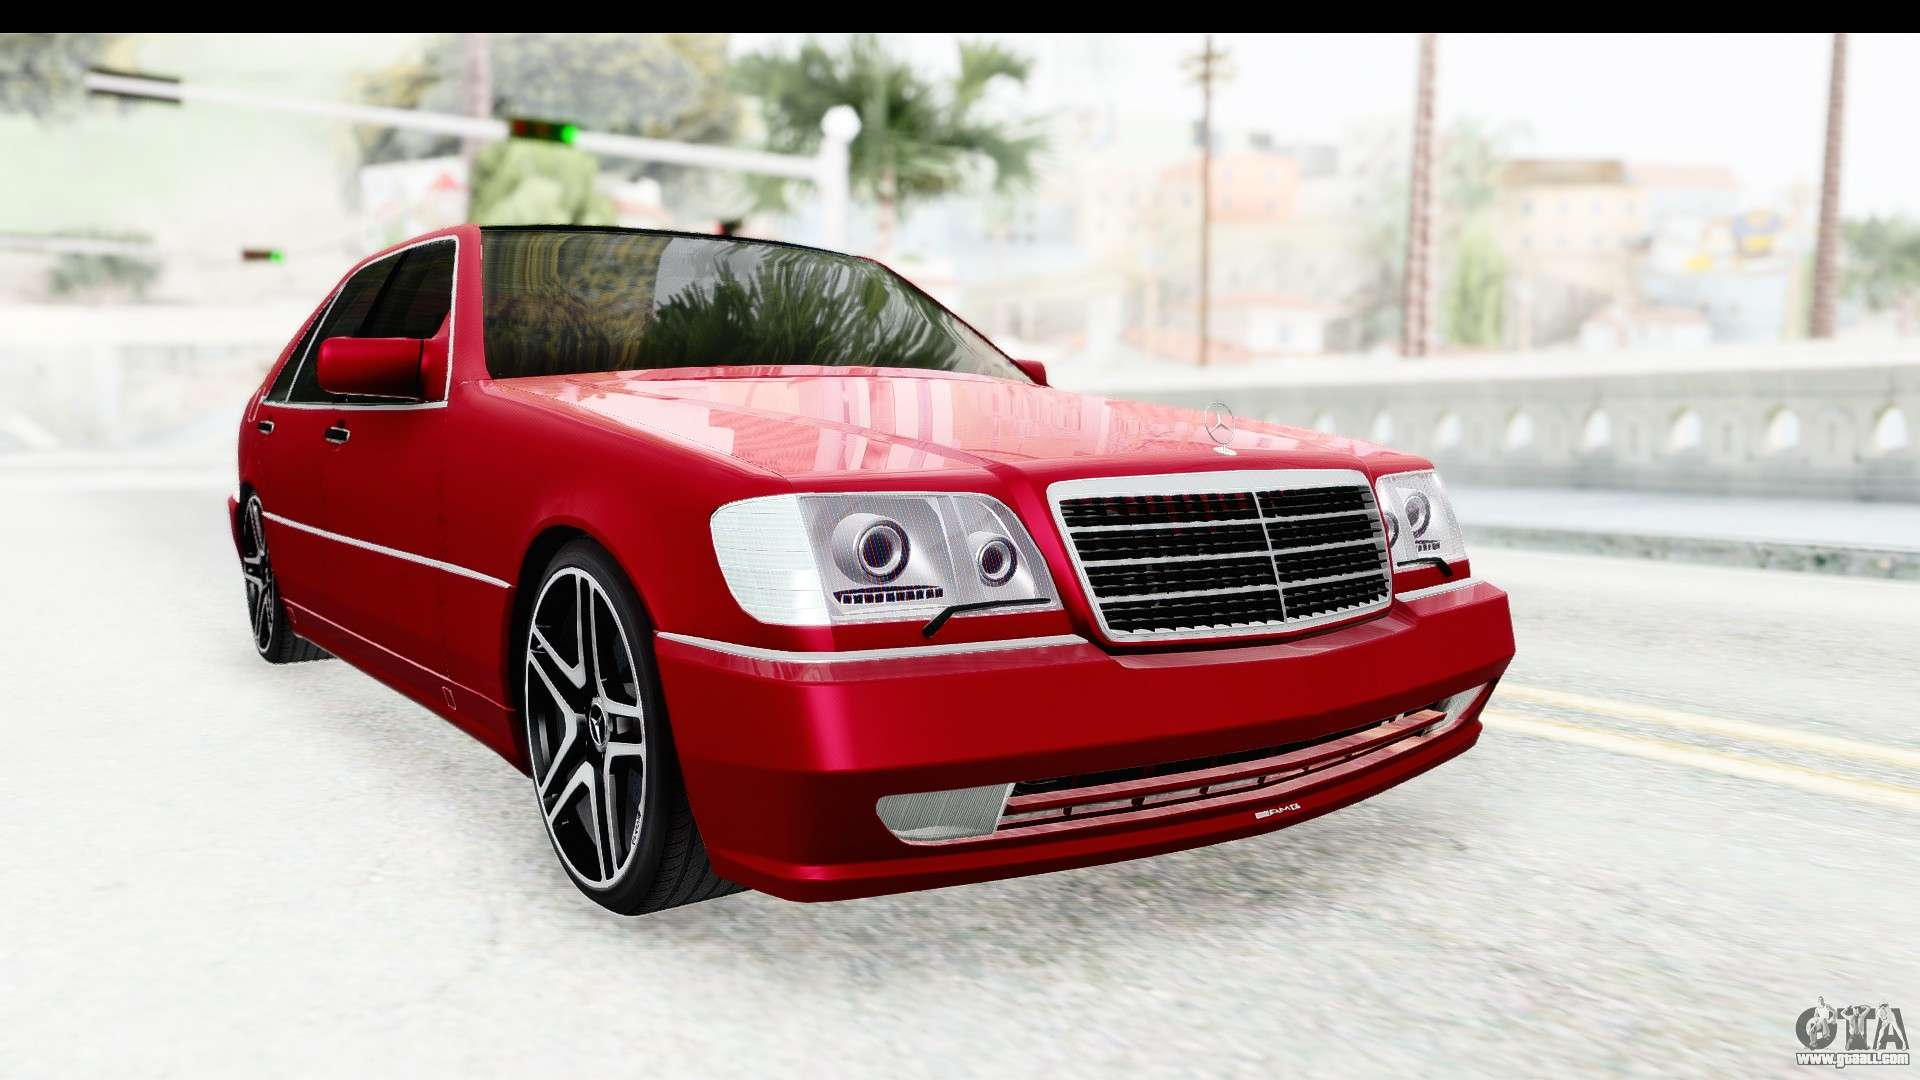 Benz s class w140 600sel or s600 m120 394 hp w140 information - Mercedes Benz W140 S60